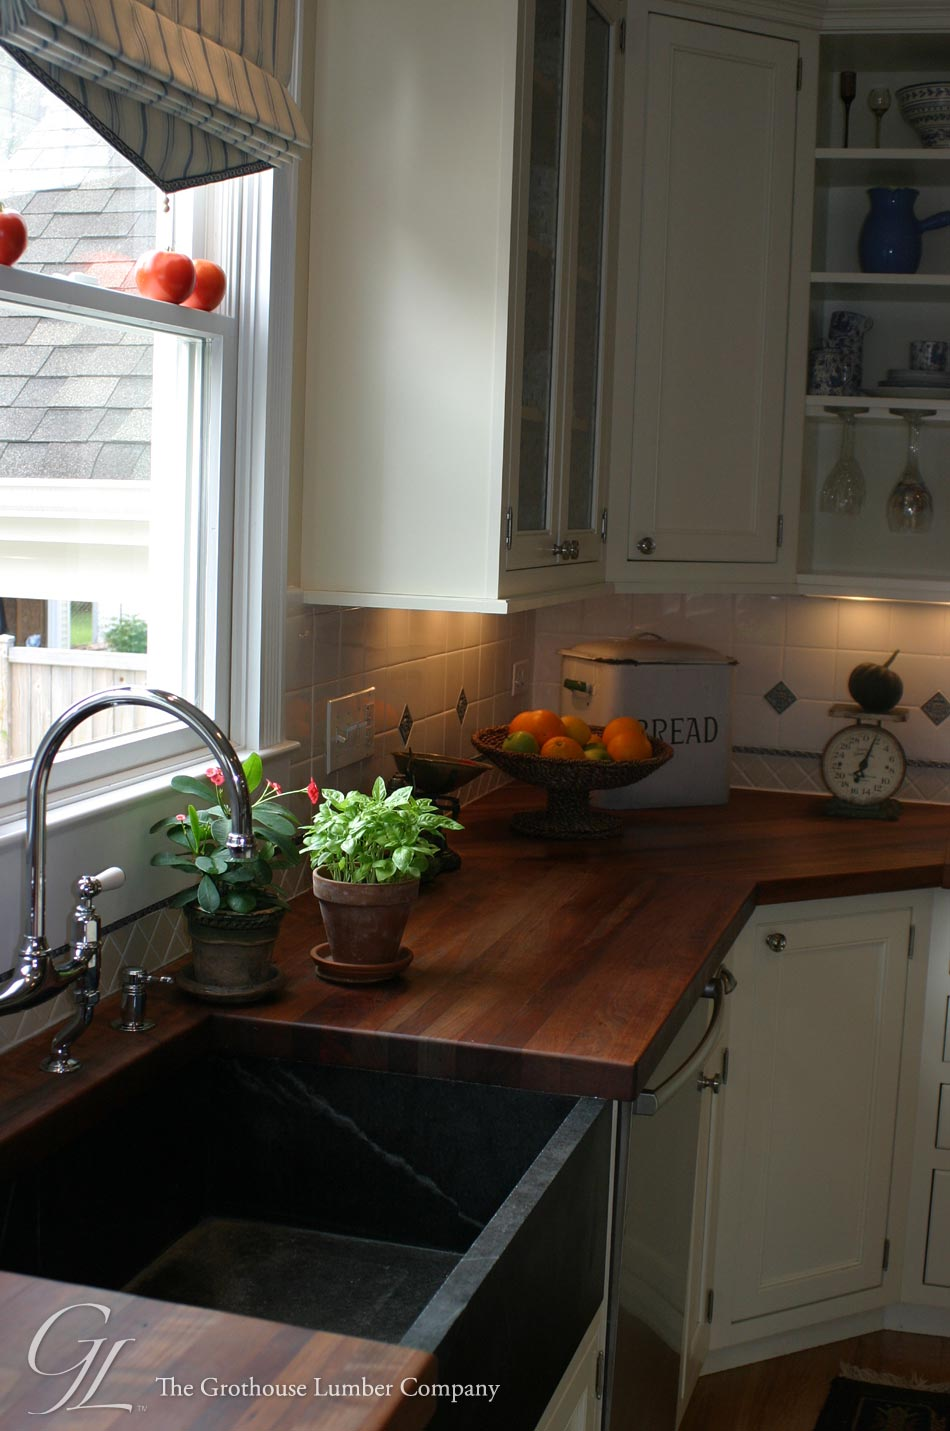 Best Wood For Butcher Block Counters: Custom American Cherry Wood Countertop